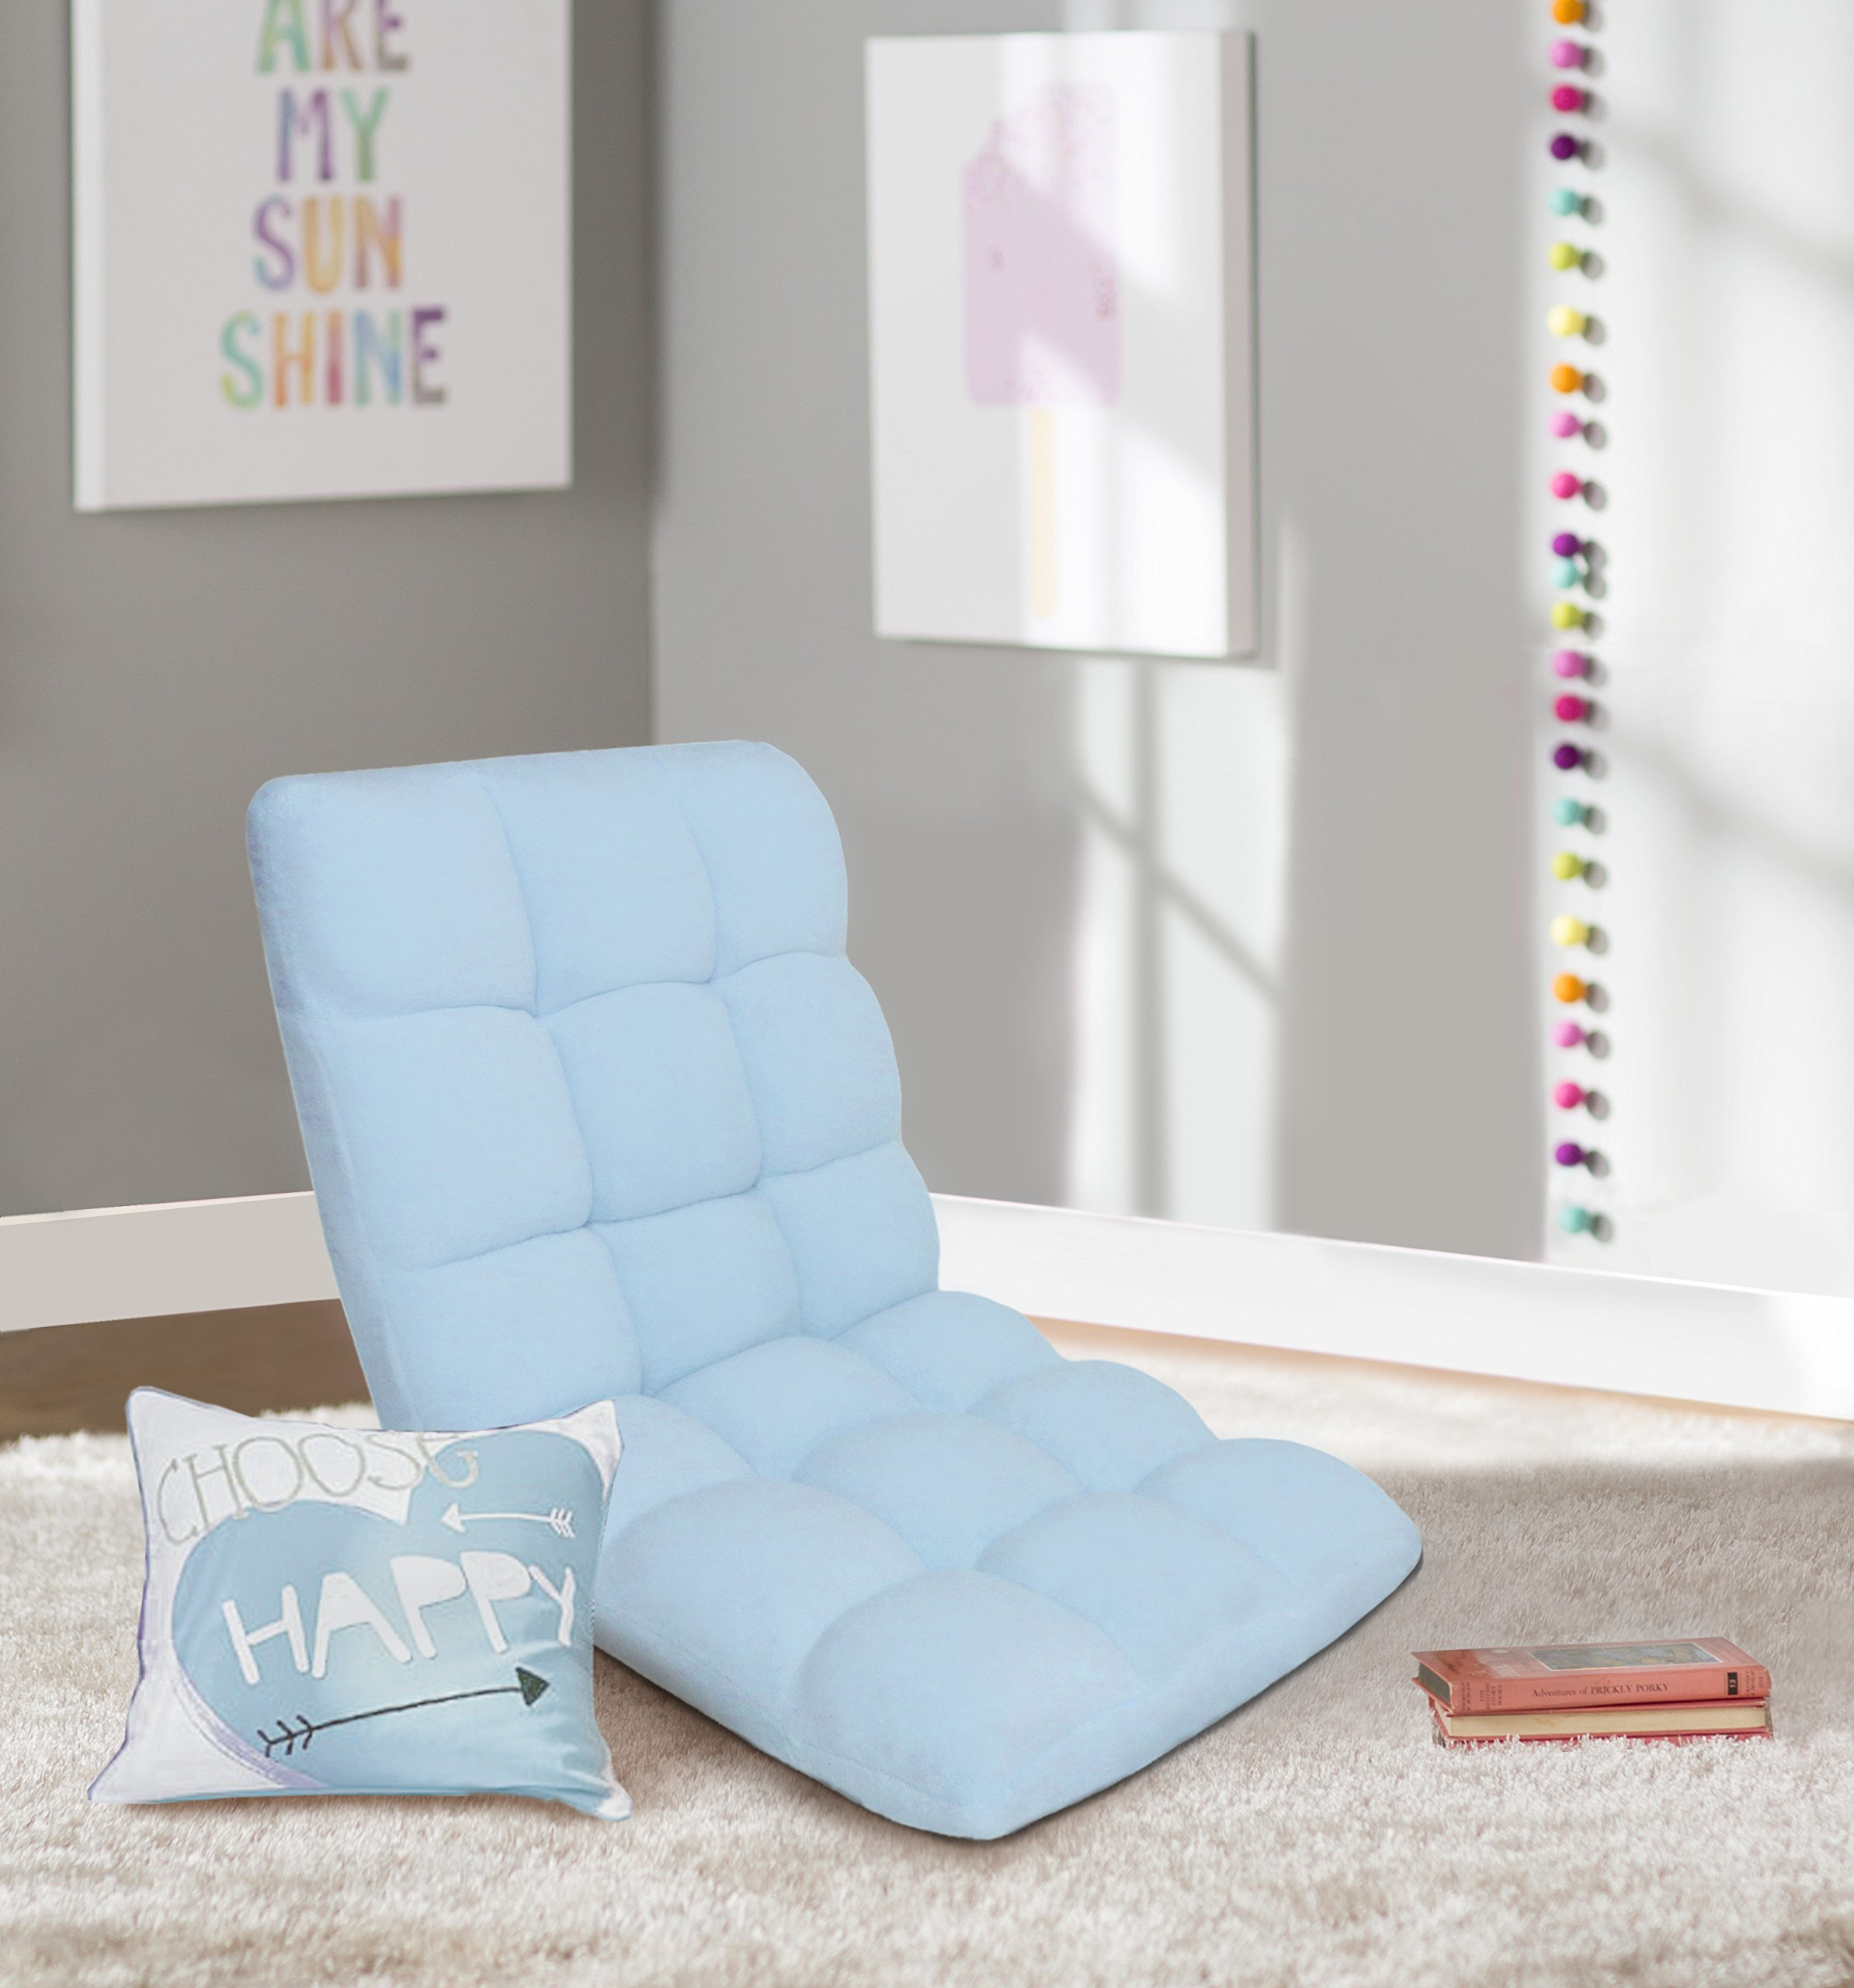 Chic Home RC64-26BL-N1-WT Lounge Adjustable Recliner Rocker Memory Foam Armless Floor Gaming Ergonomic Chair, Blue by Chic Home